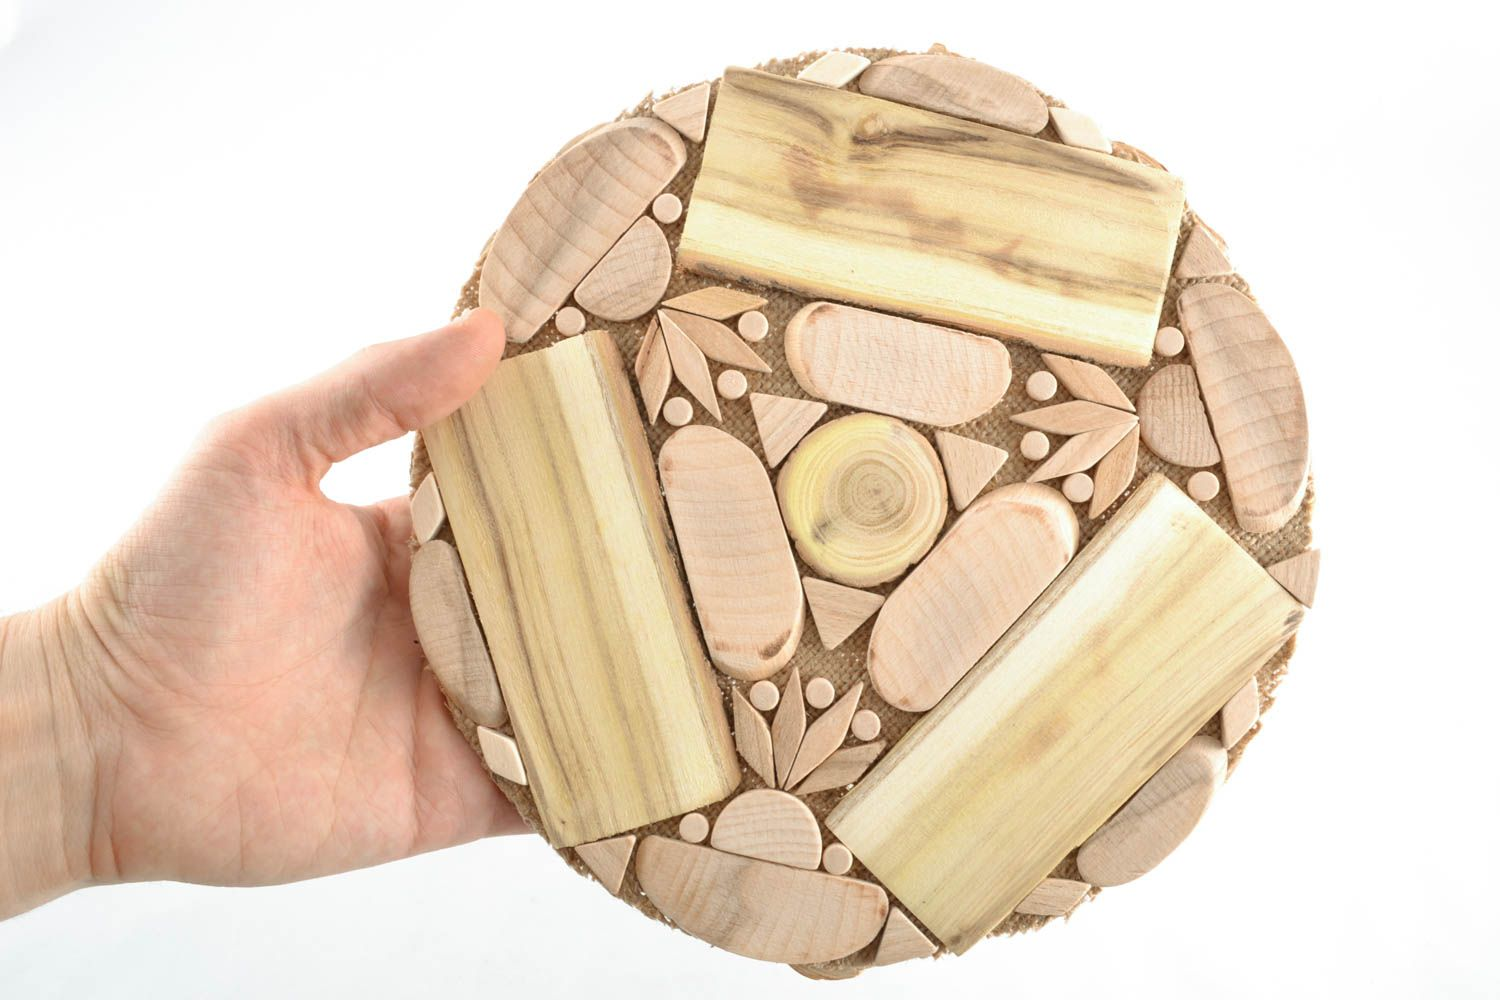 holders Wooden heat resistant coaster - MADEheart.com